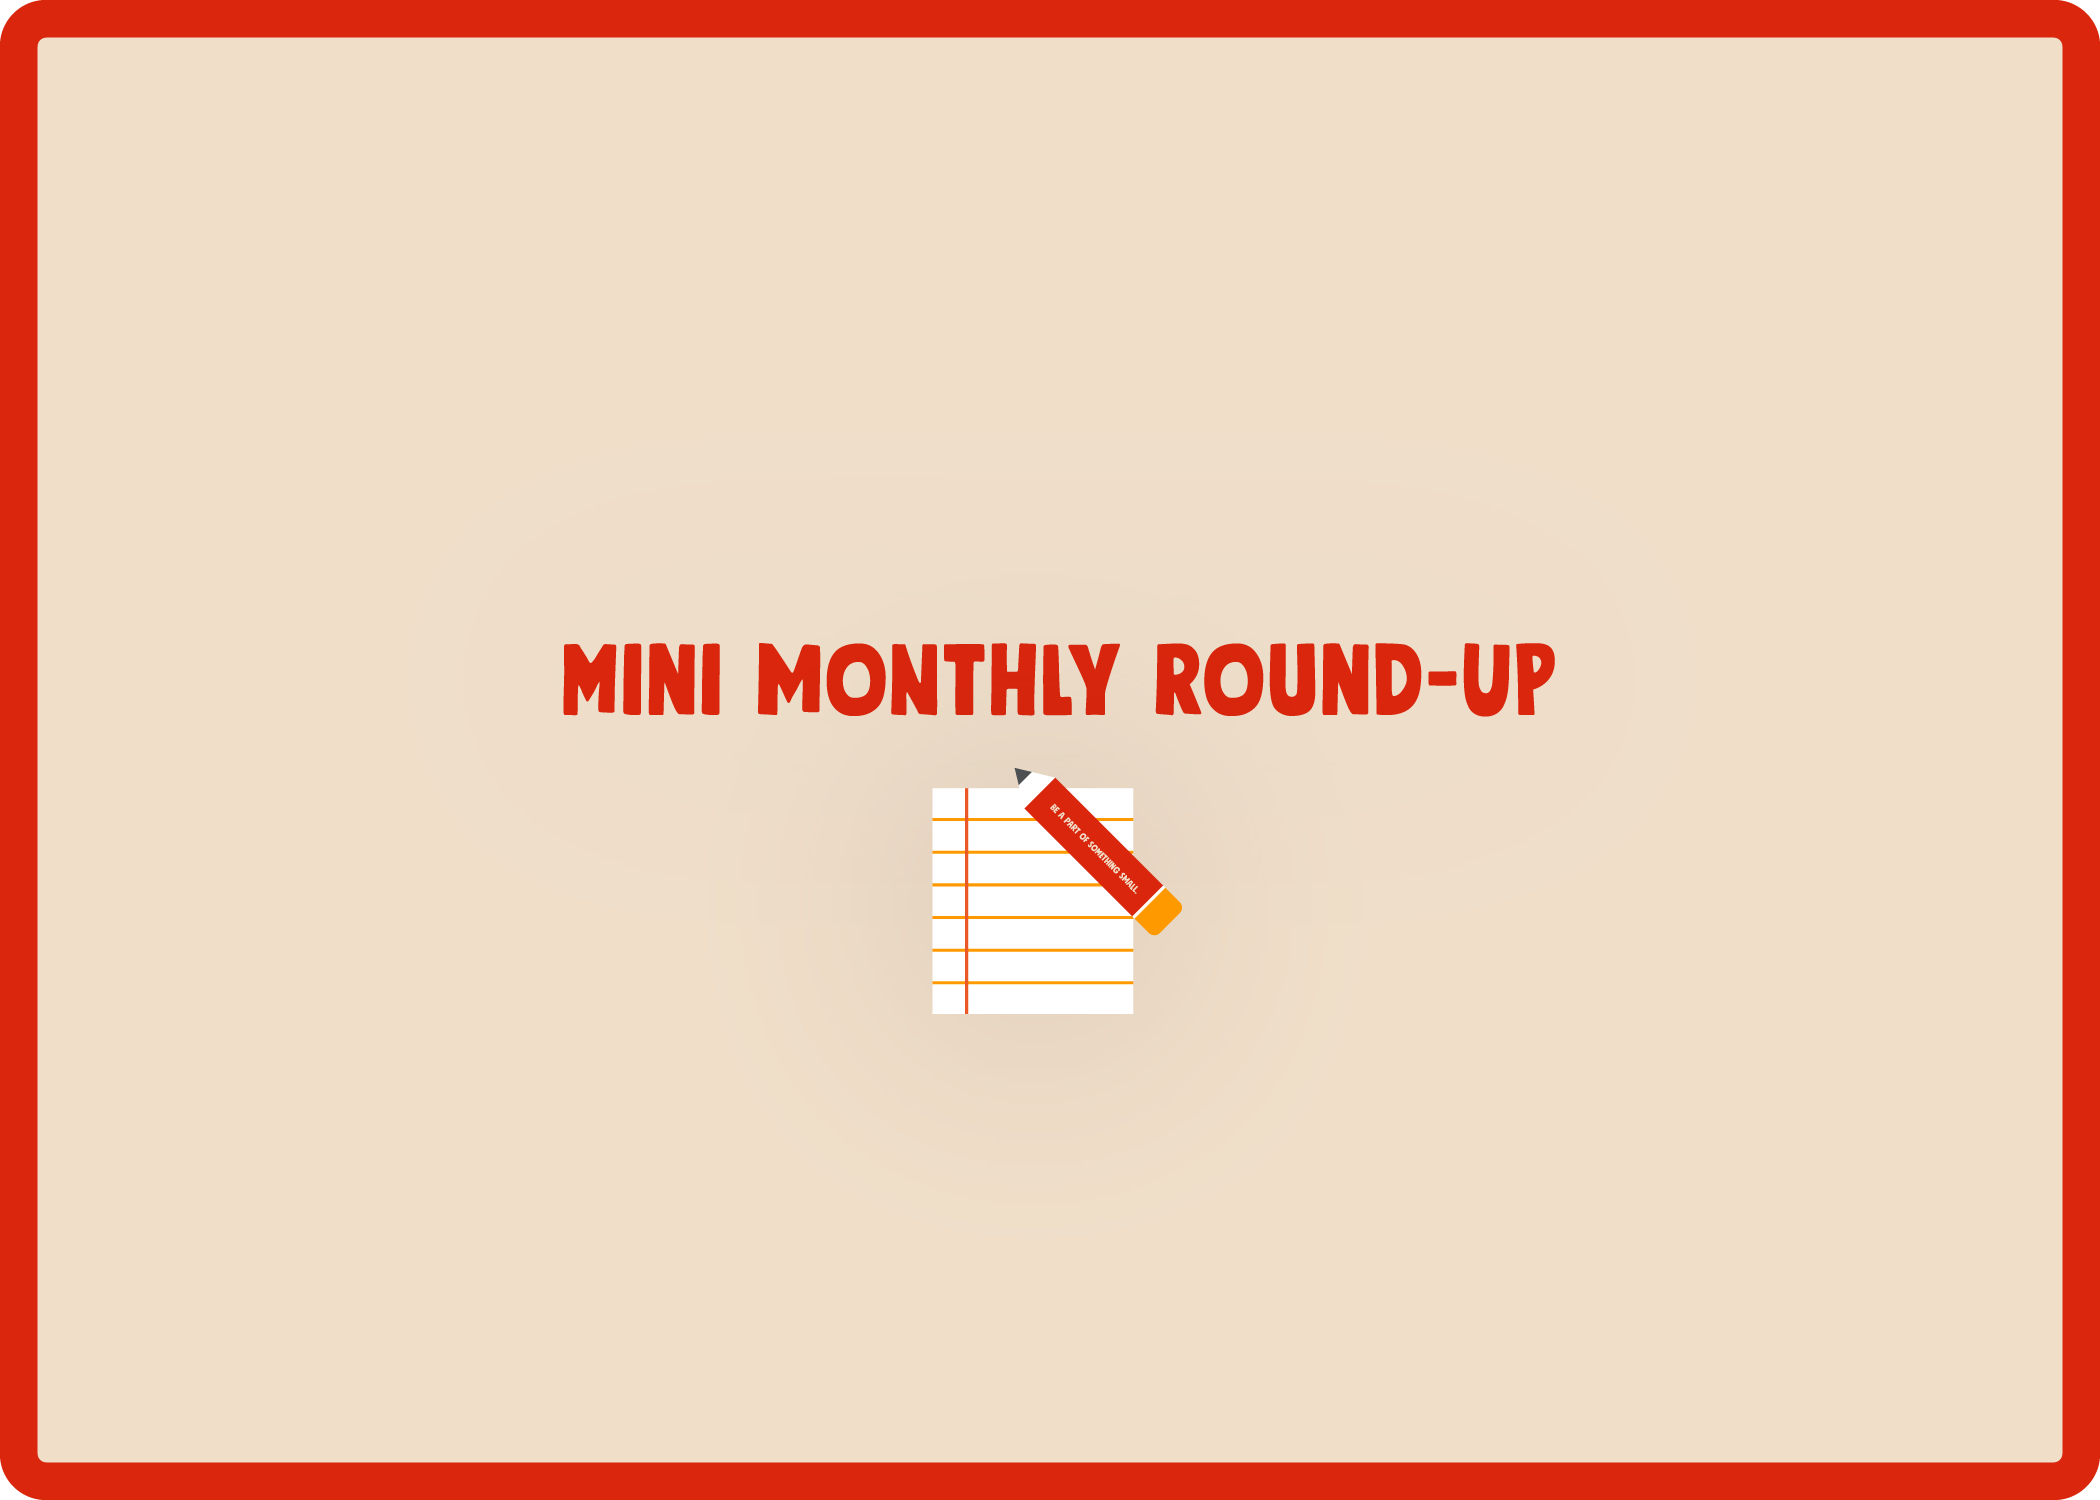 Mini Monthly Round-Up